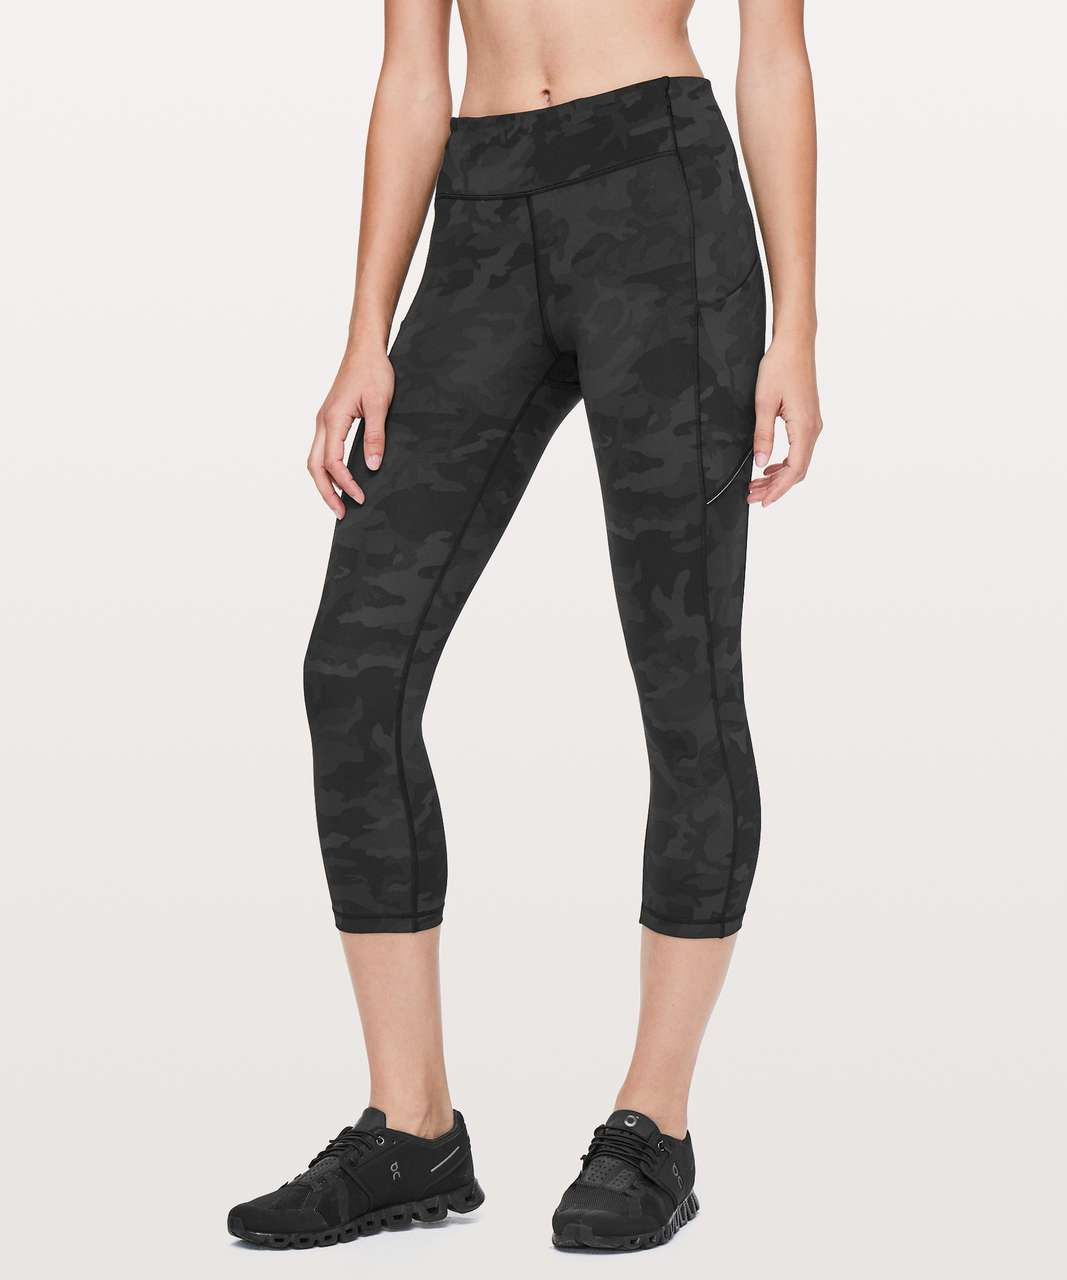 "Lululemon Speed Up Crop *21"" - Incognito Camo Multi Grey"